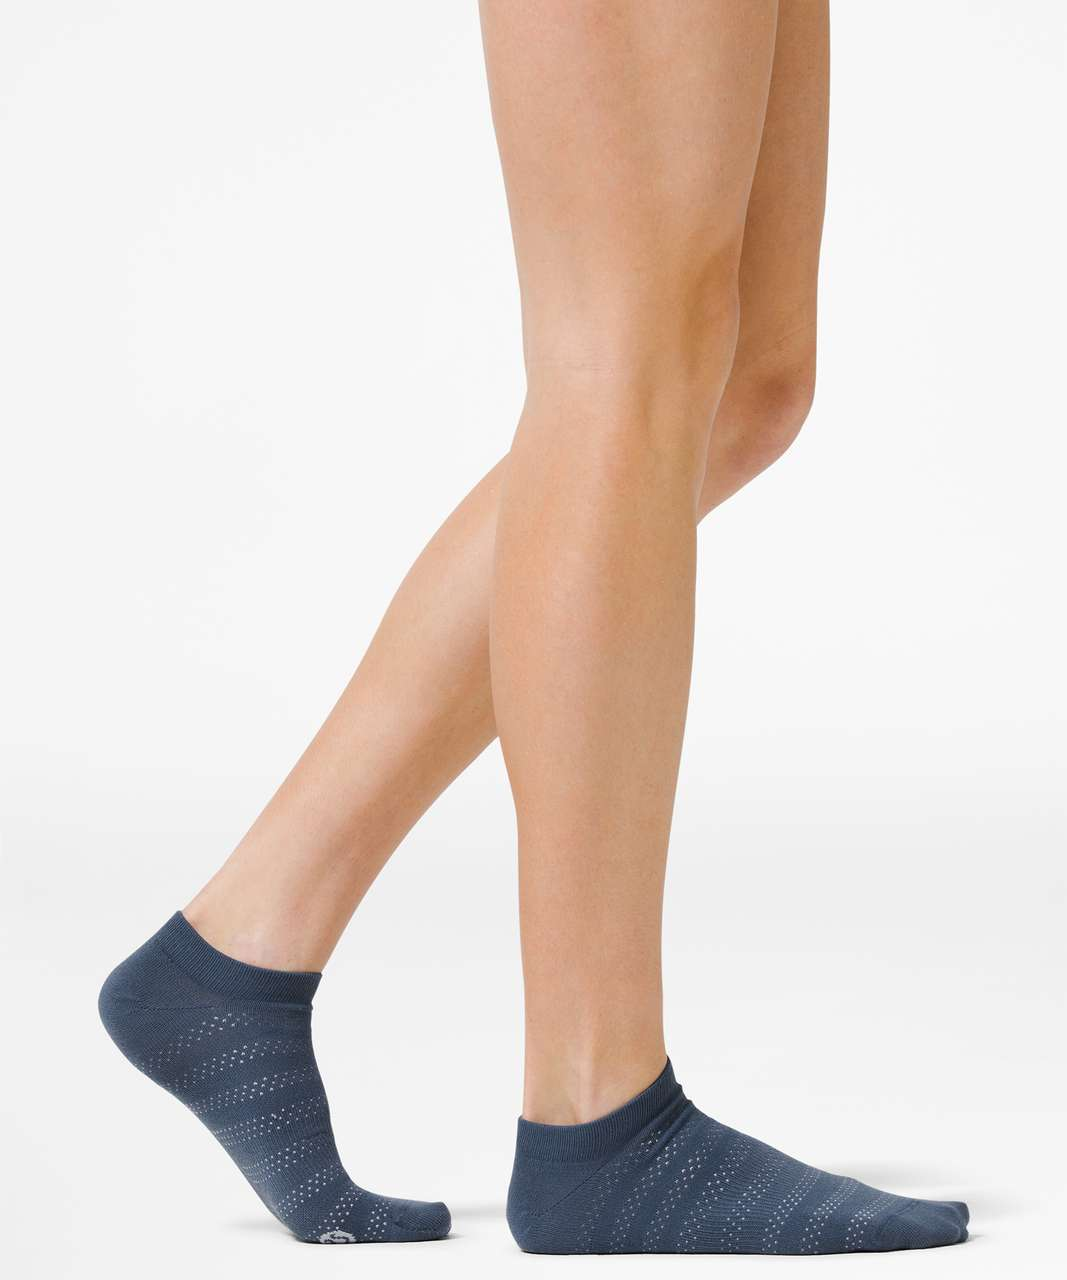 Lululemon On the Fly Sock *3-Pack - Ink Blue / Daydream / White